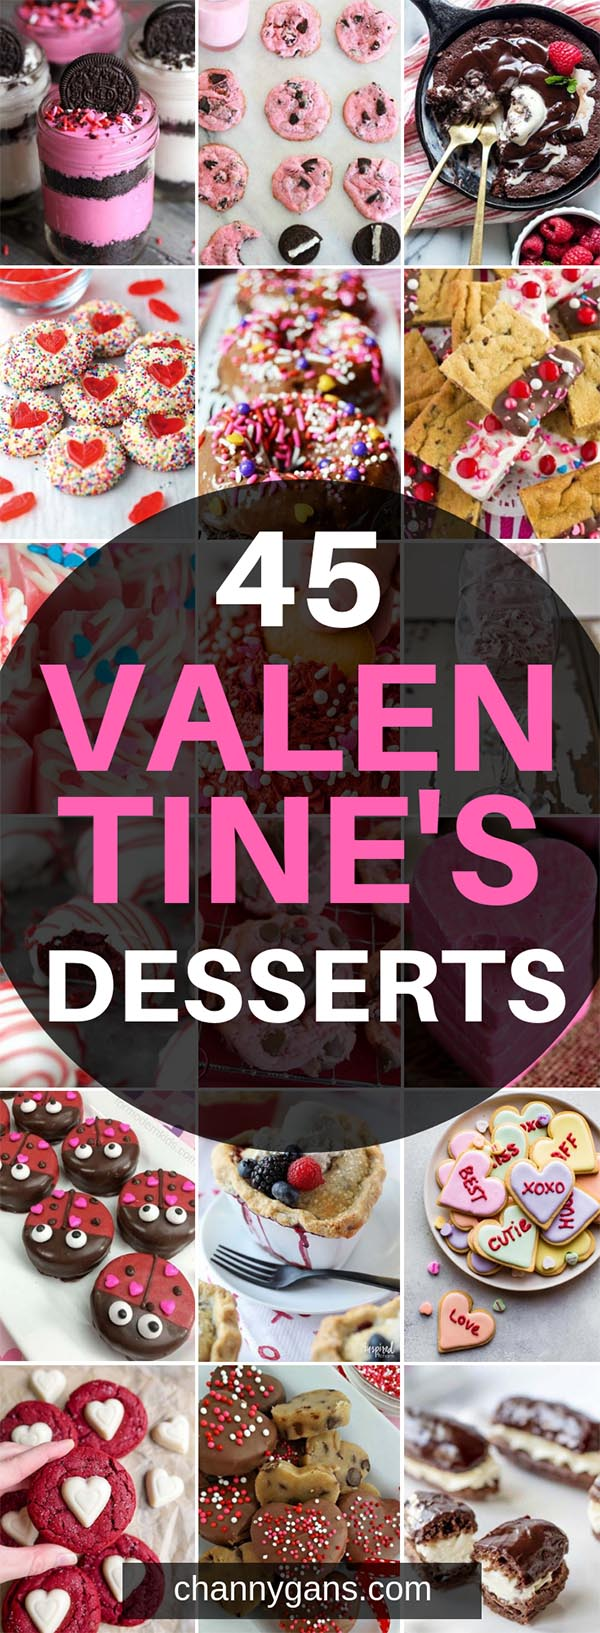 Surprise your loved one with these cute valentines day desserts! Or you know, just make them for yourself!